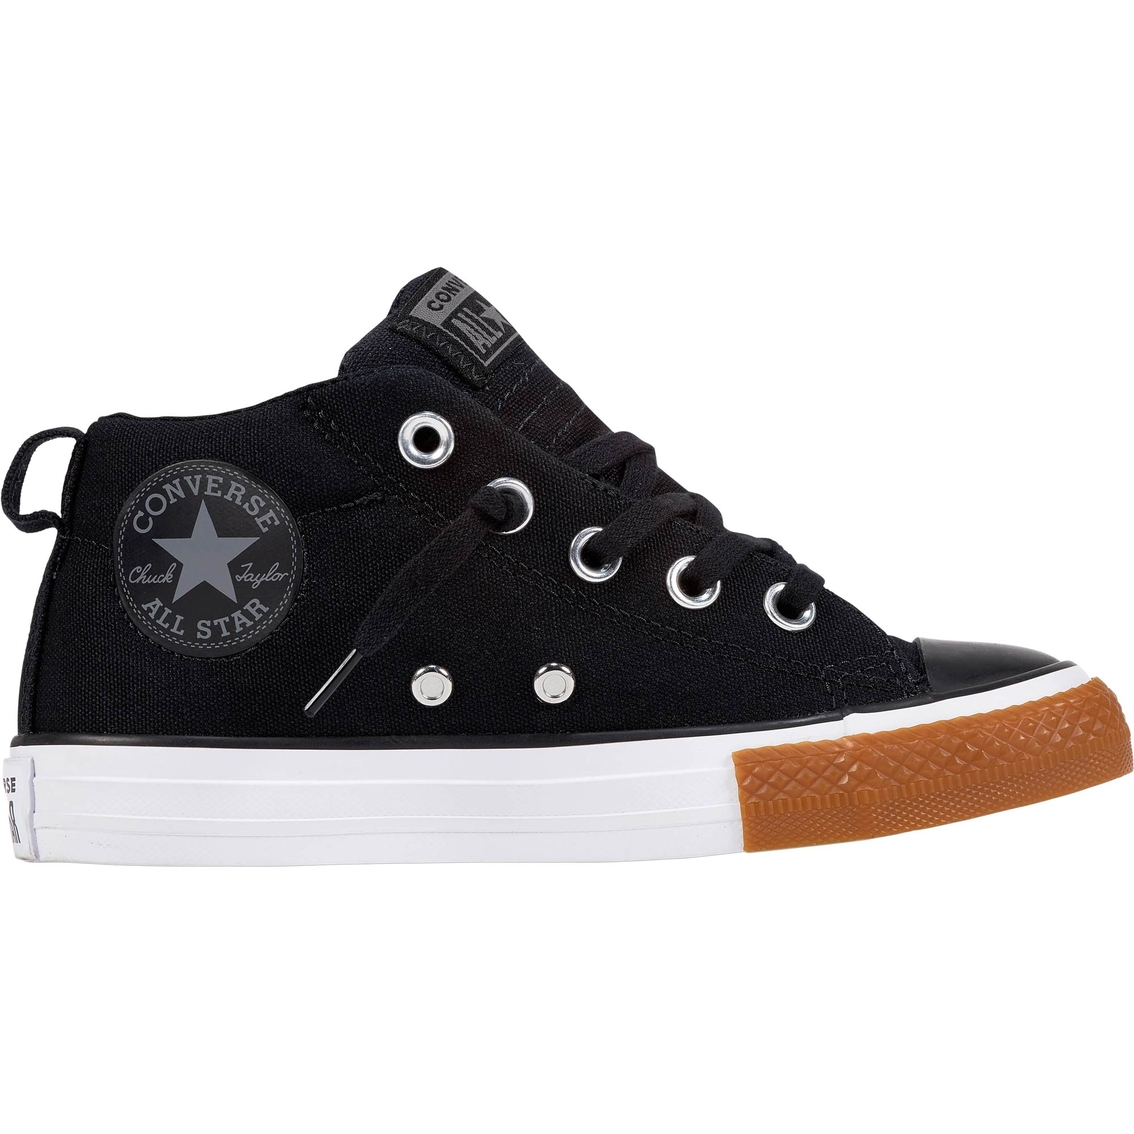 22619b4b3c39 Converse Toddler Boys Chuck Taylor All Star Street Mid Sneakers ...